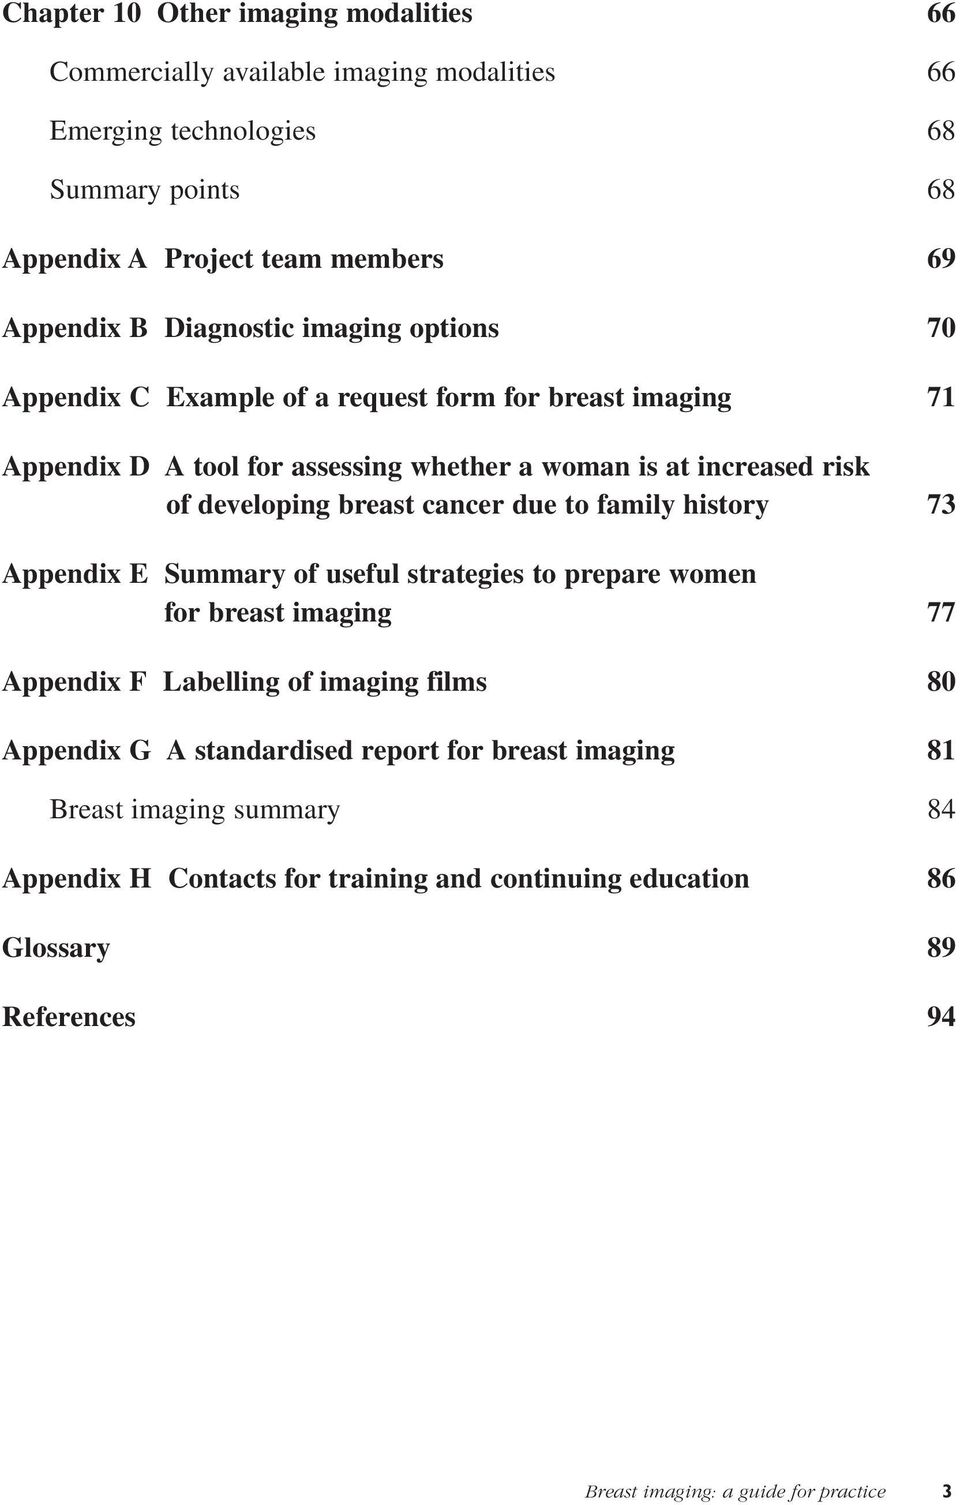 breast cancer due to family history 73 Appendix E Summary of useful strategies to prepare women for breast imaging 77 Appendix F Labelling of imaging films 80 Appendix G A